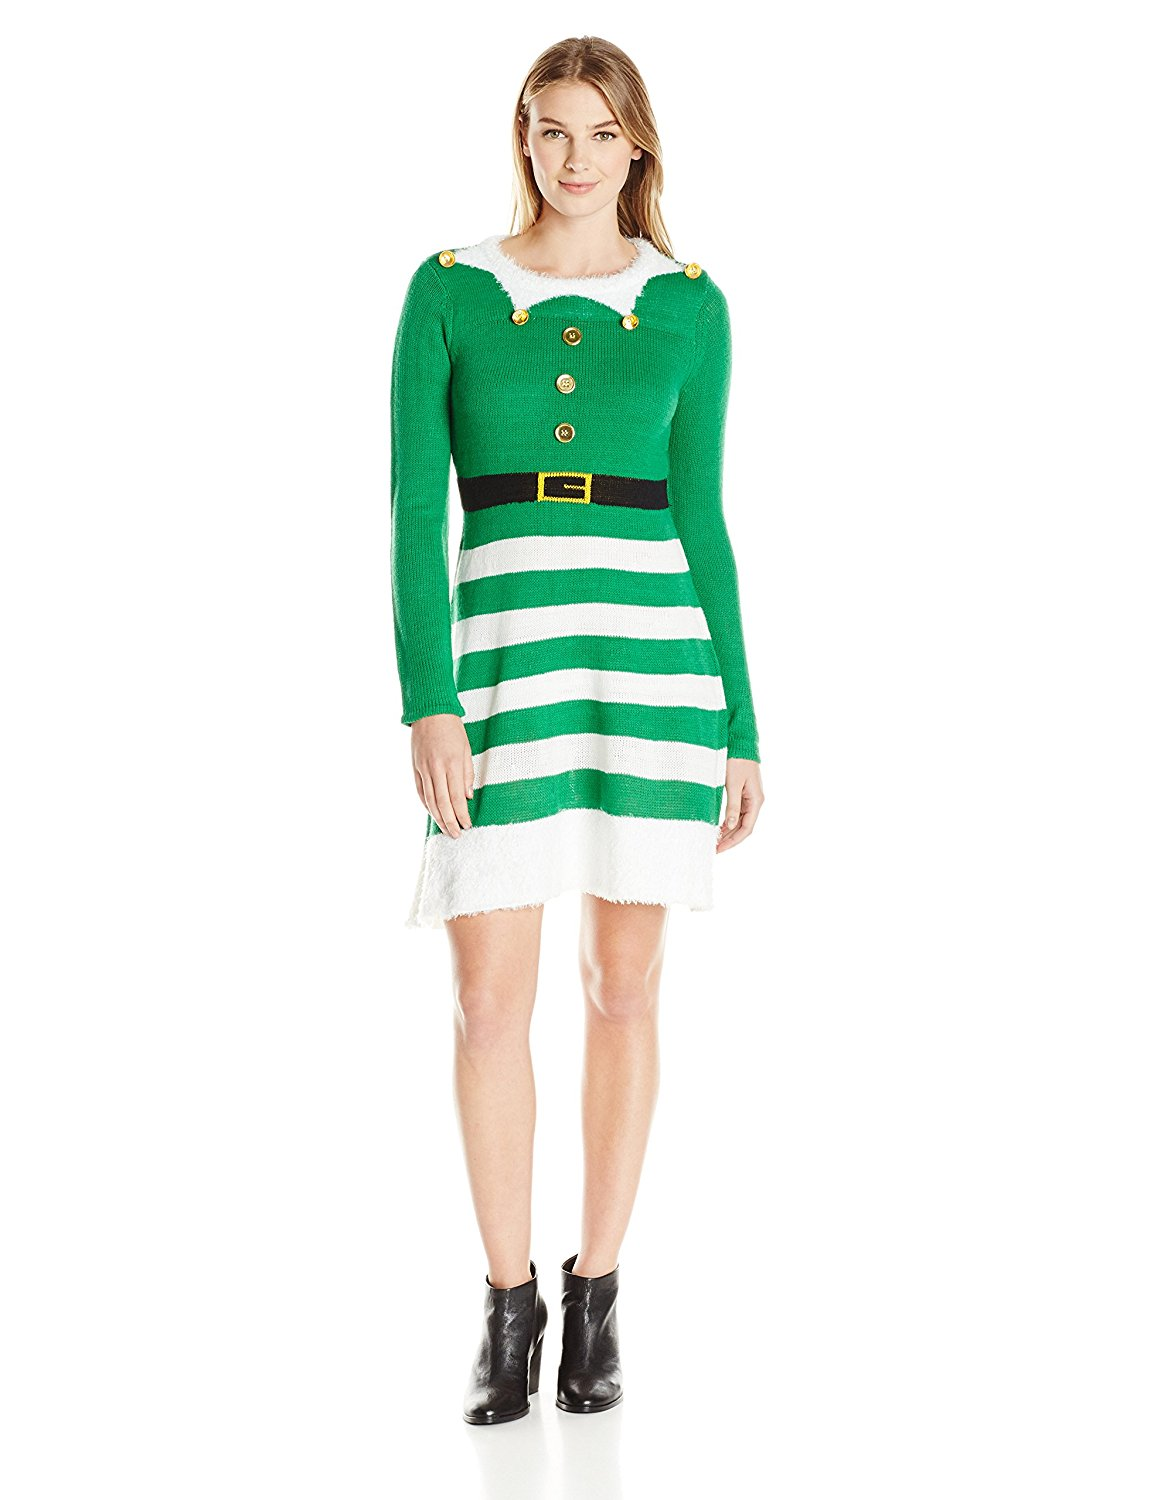 4b8de307fd7 Get Quotations · Allison Brittney Women s Fit and Flare Elf Ugly Christmas Sweater  Dress